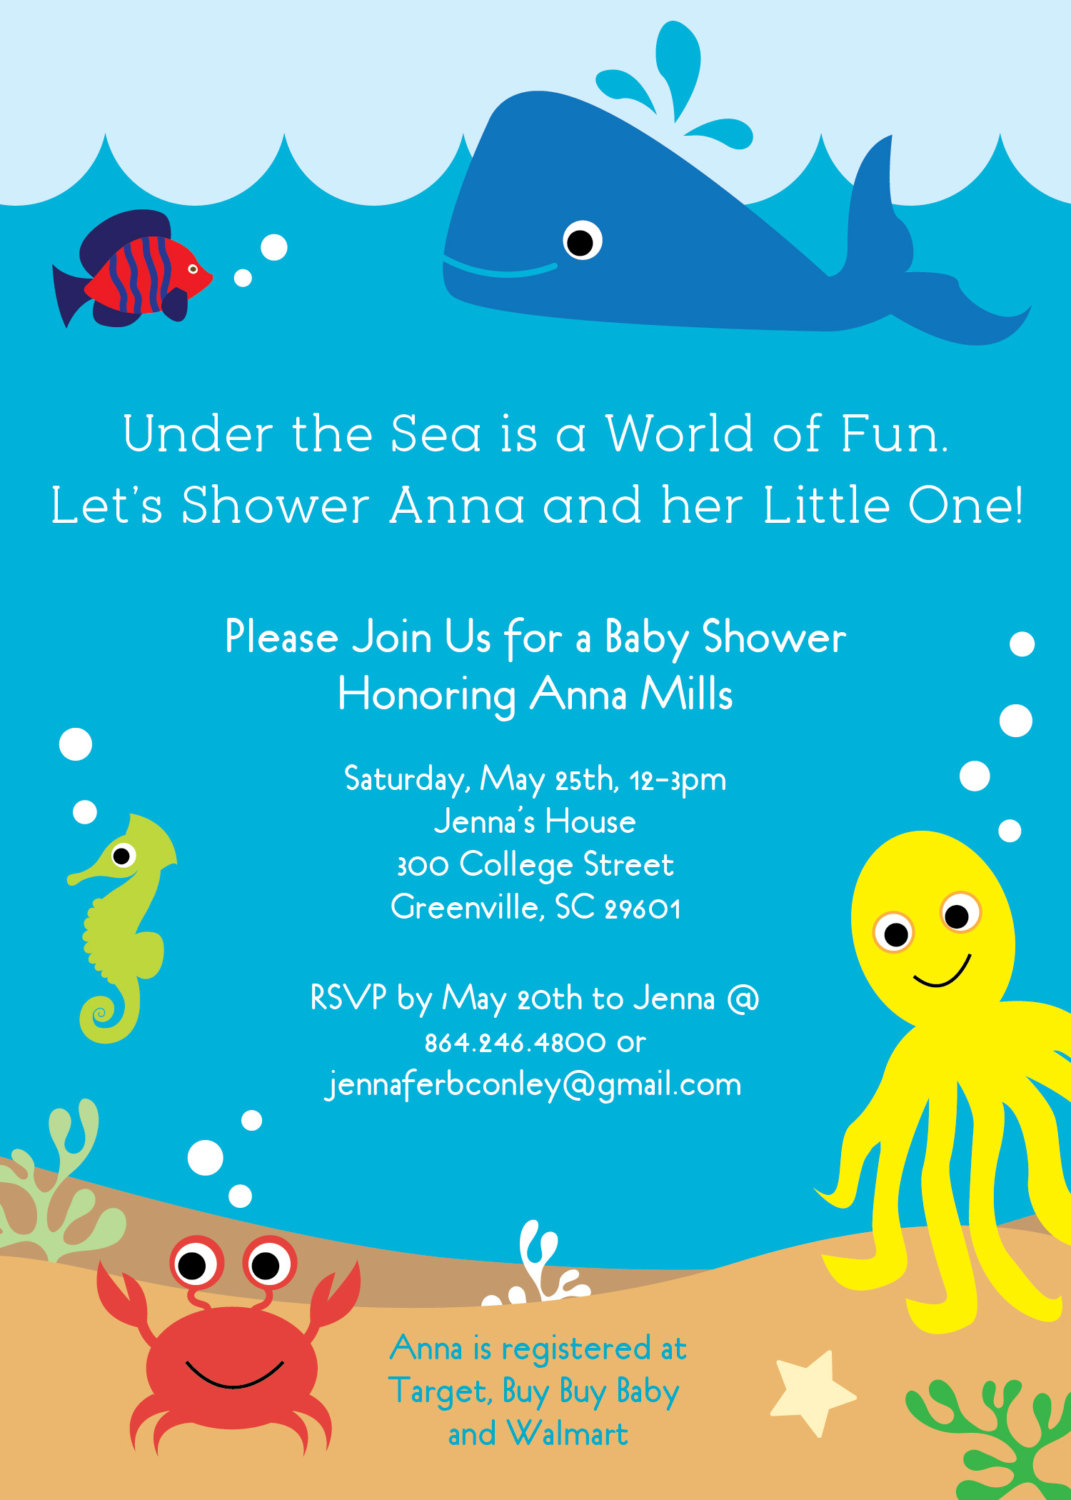 Under the sea baby shower invitations creatures boy girl gender il fullxfull327875459 small filmwisefo